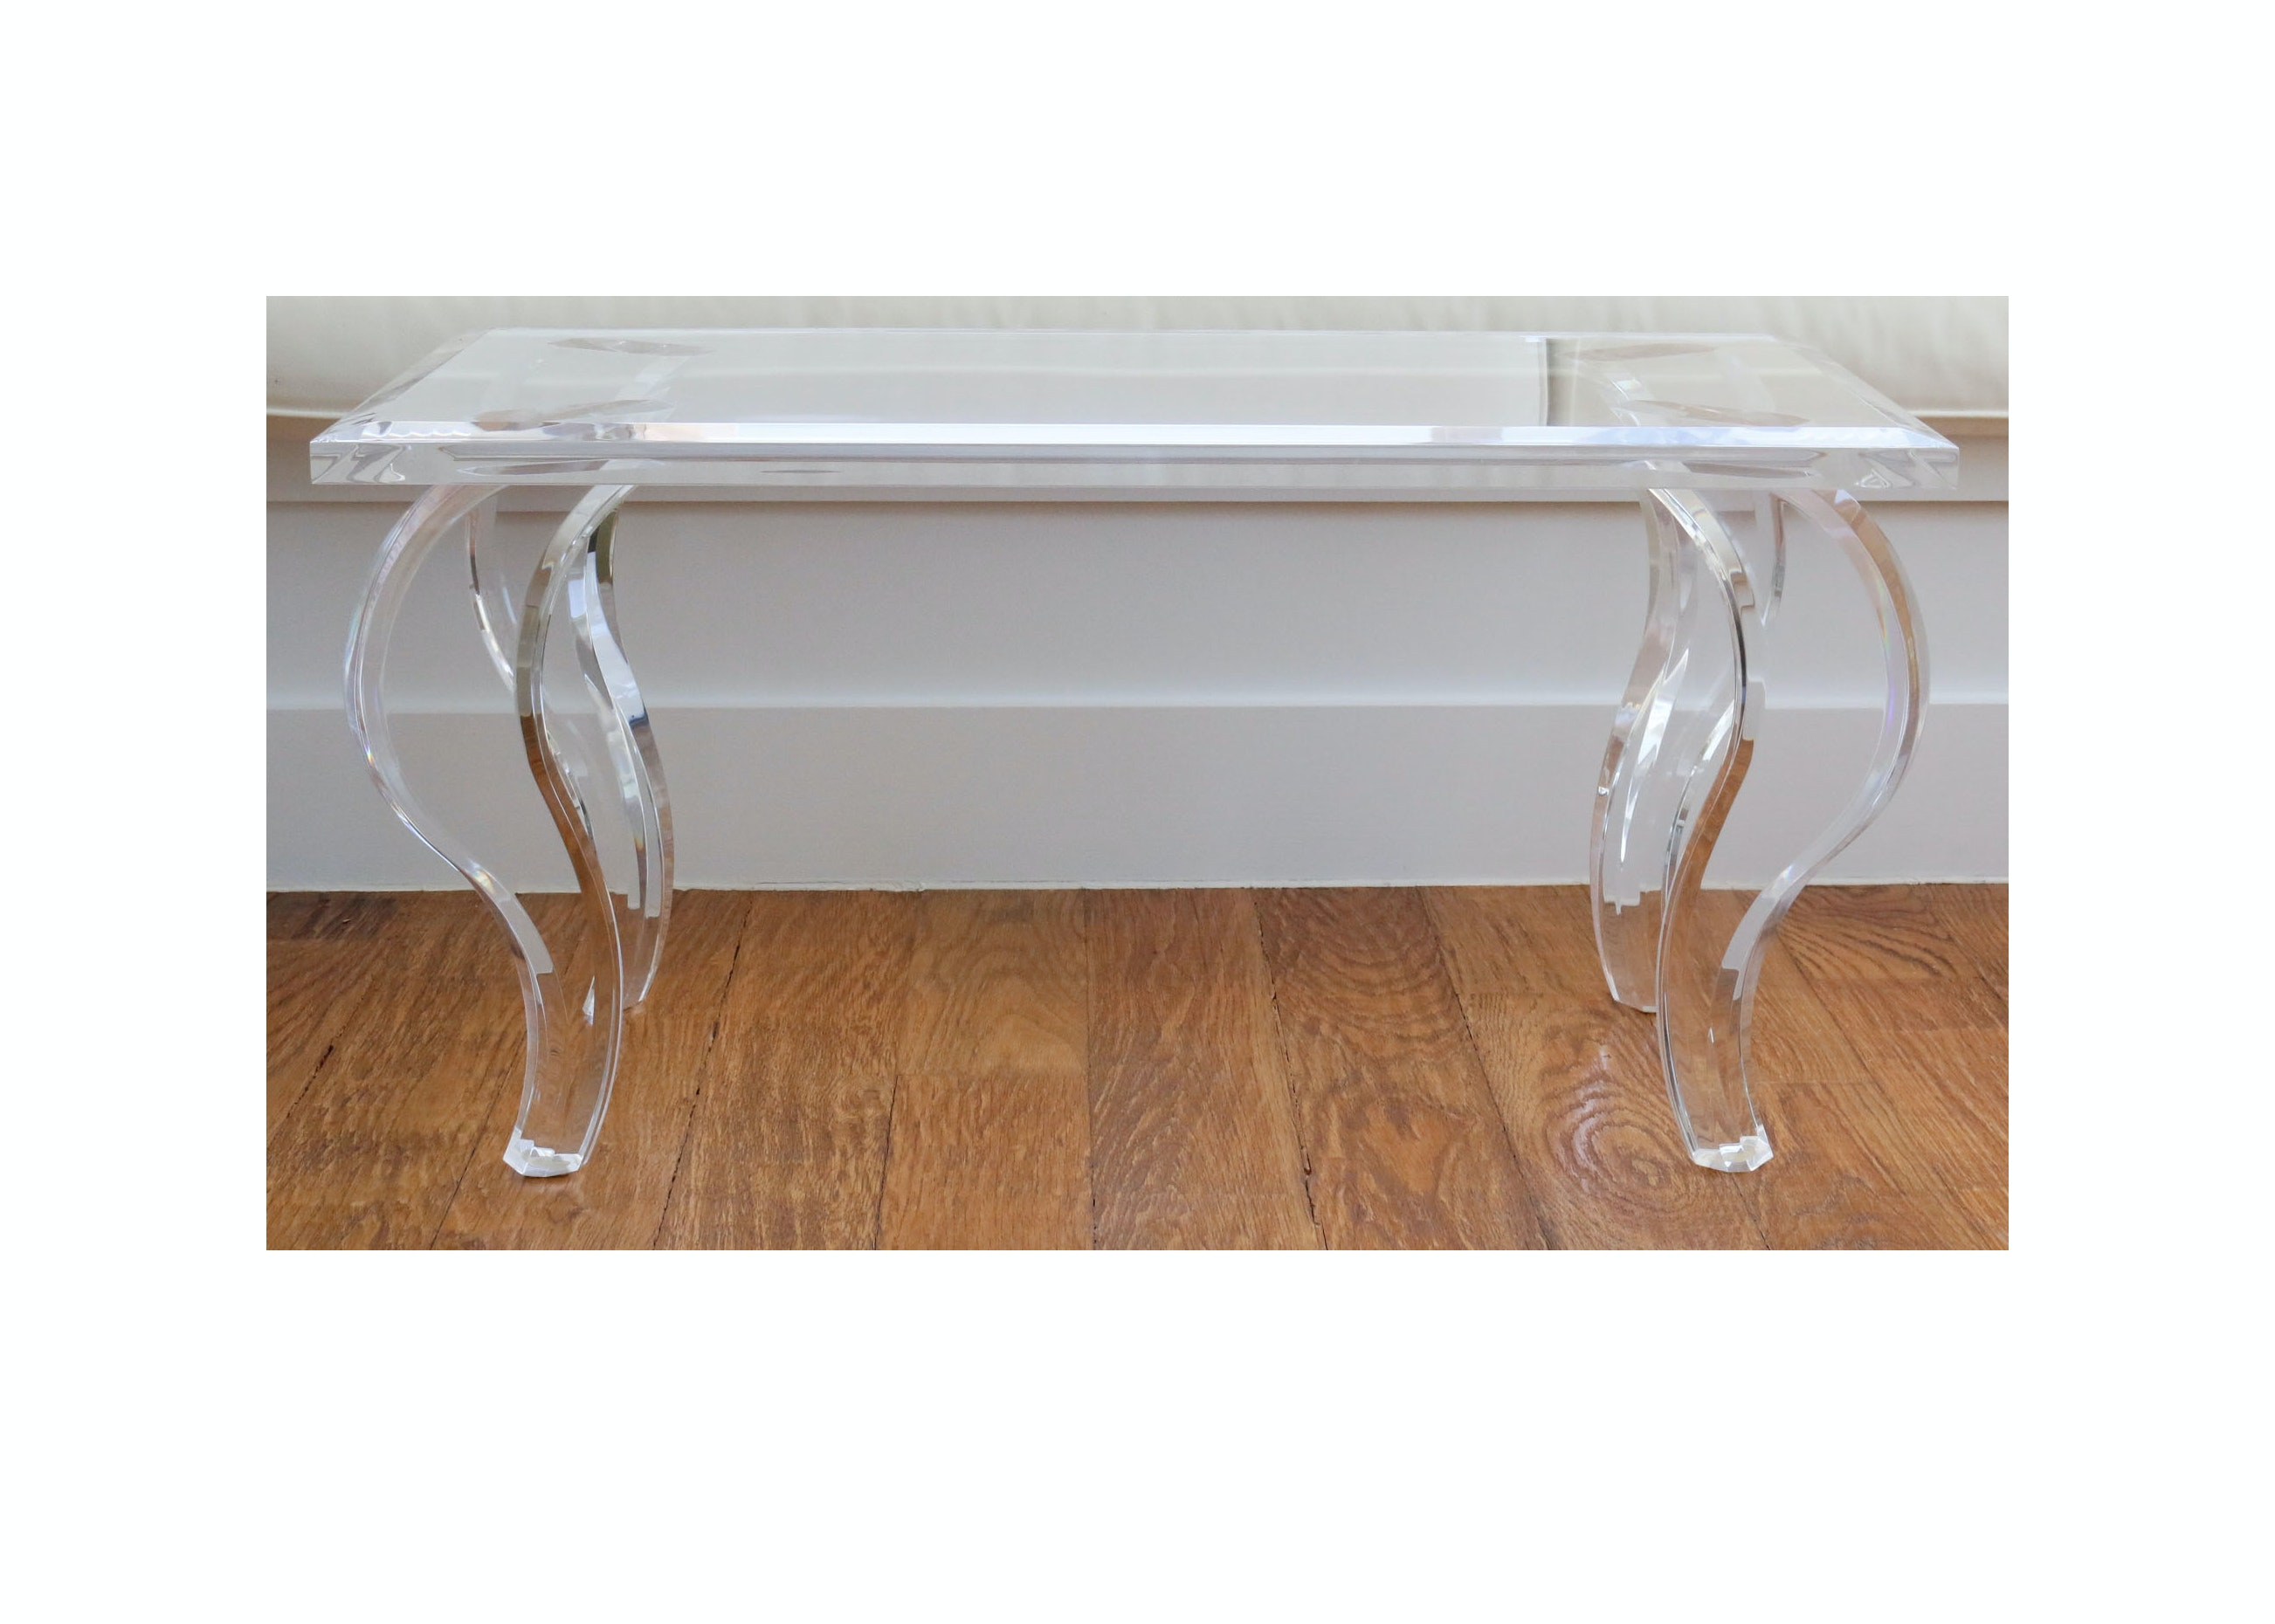 Modernist Style Lucite Coffee Table From Cantoni